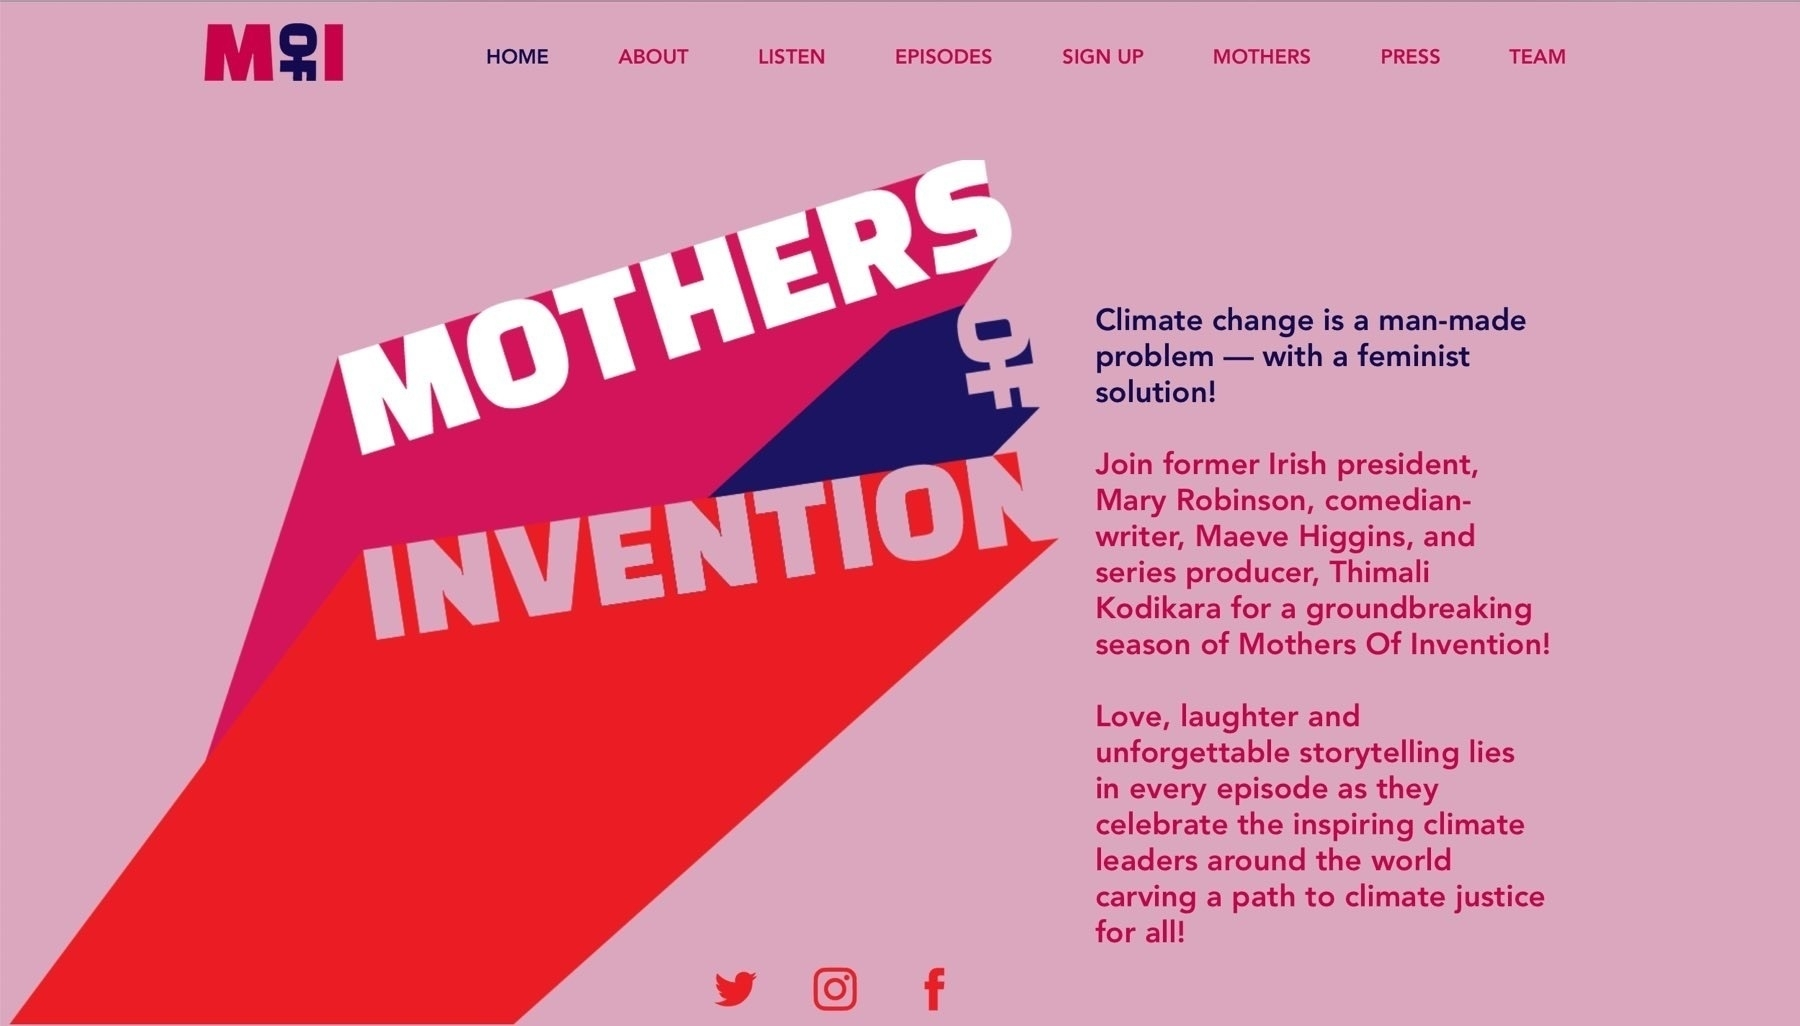 Screenshot of the the cover page for Mothers of Invention.